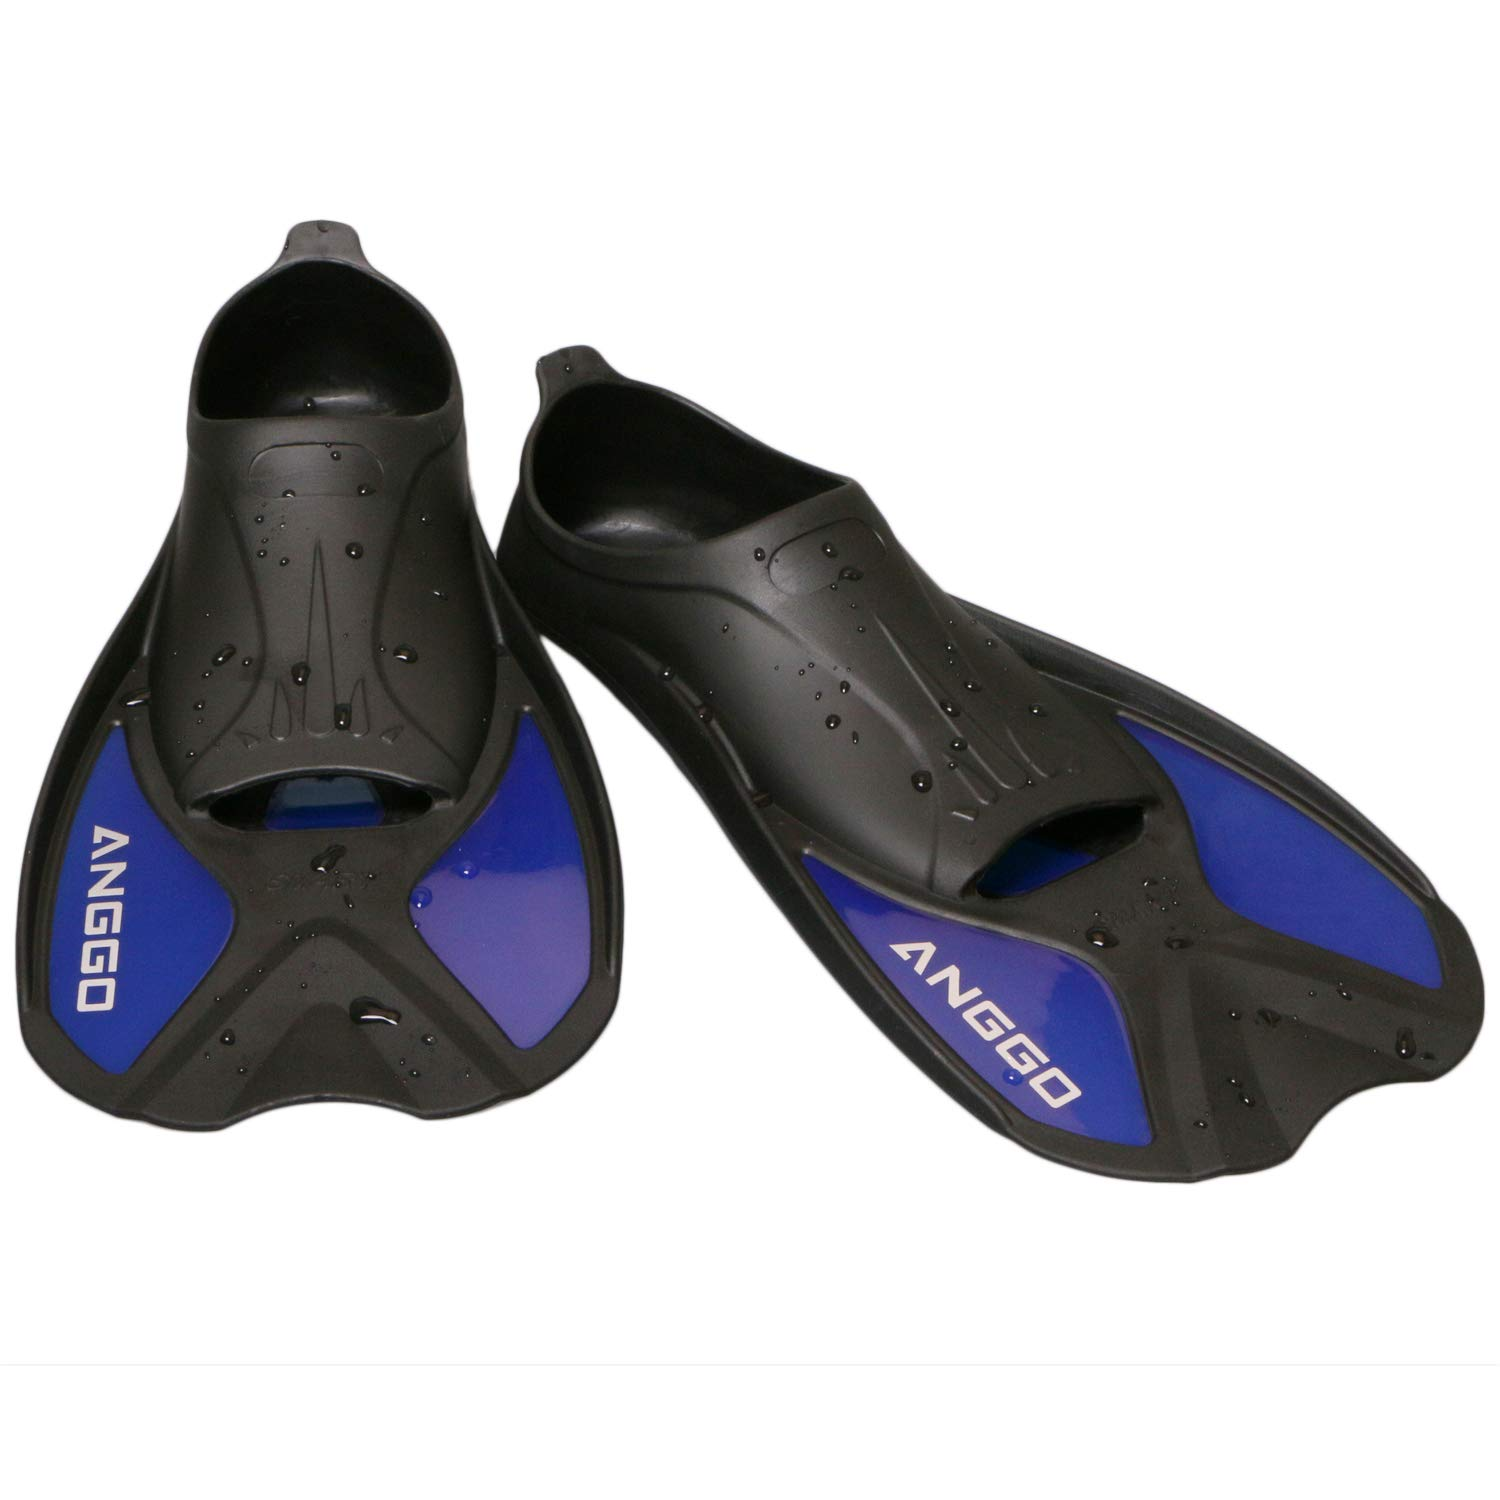 ANGGO Short Dive Fins for Swimming Snorkeling and Diving (Blue, X-Large) by ANGGO